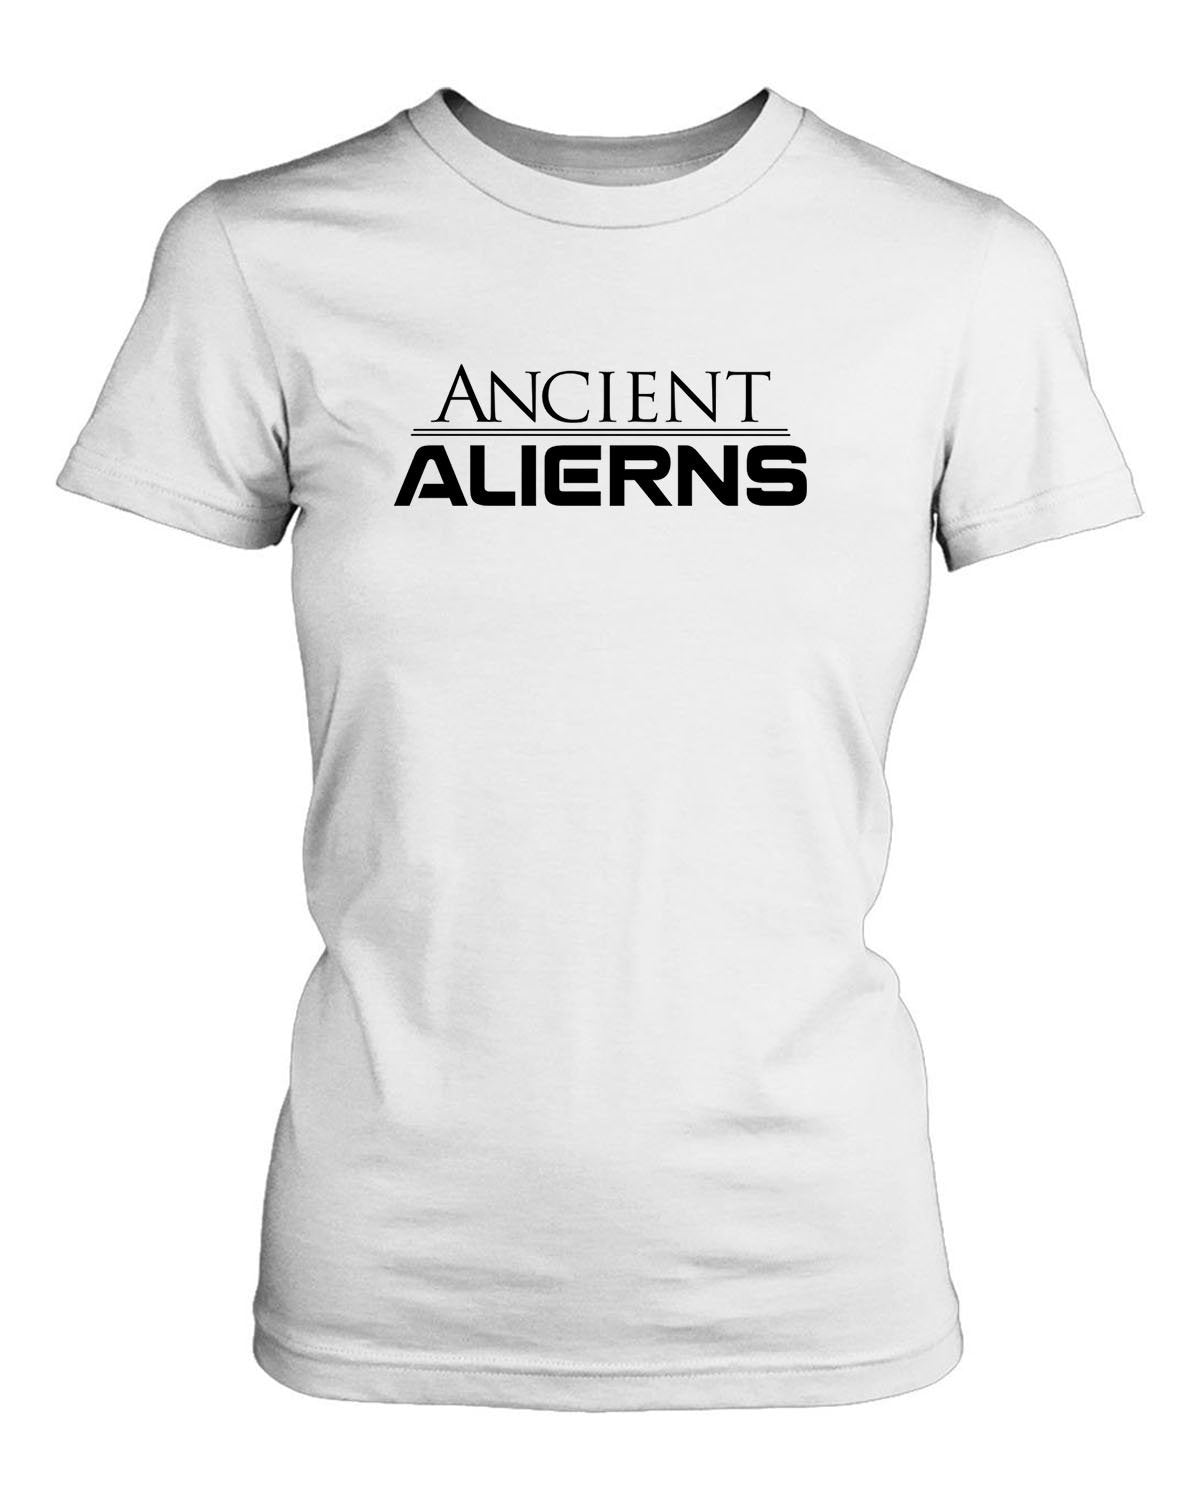 Ancient Alierns Women's T-Shirt - Nuu Shirtz